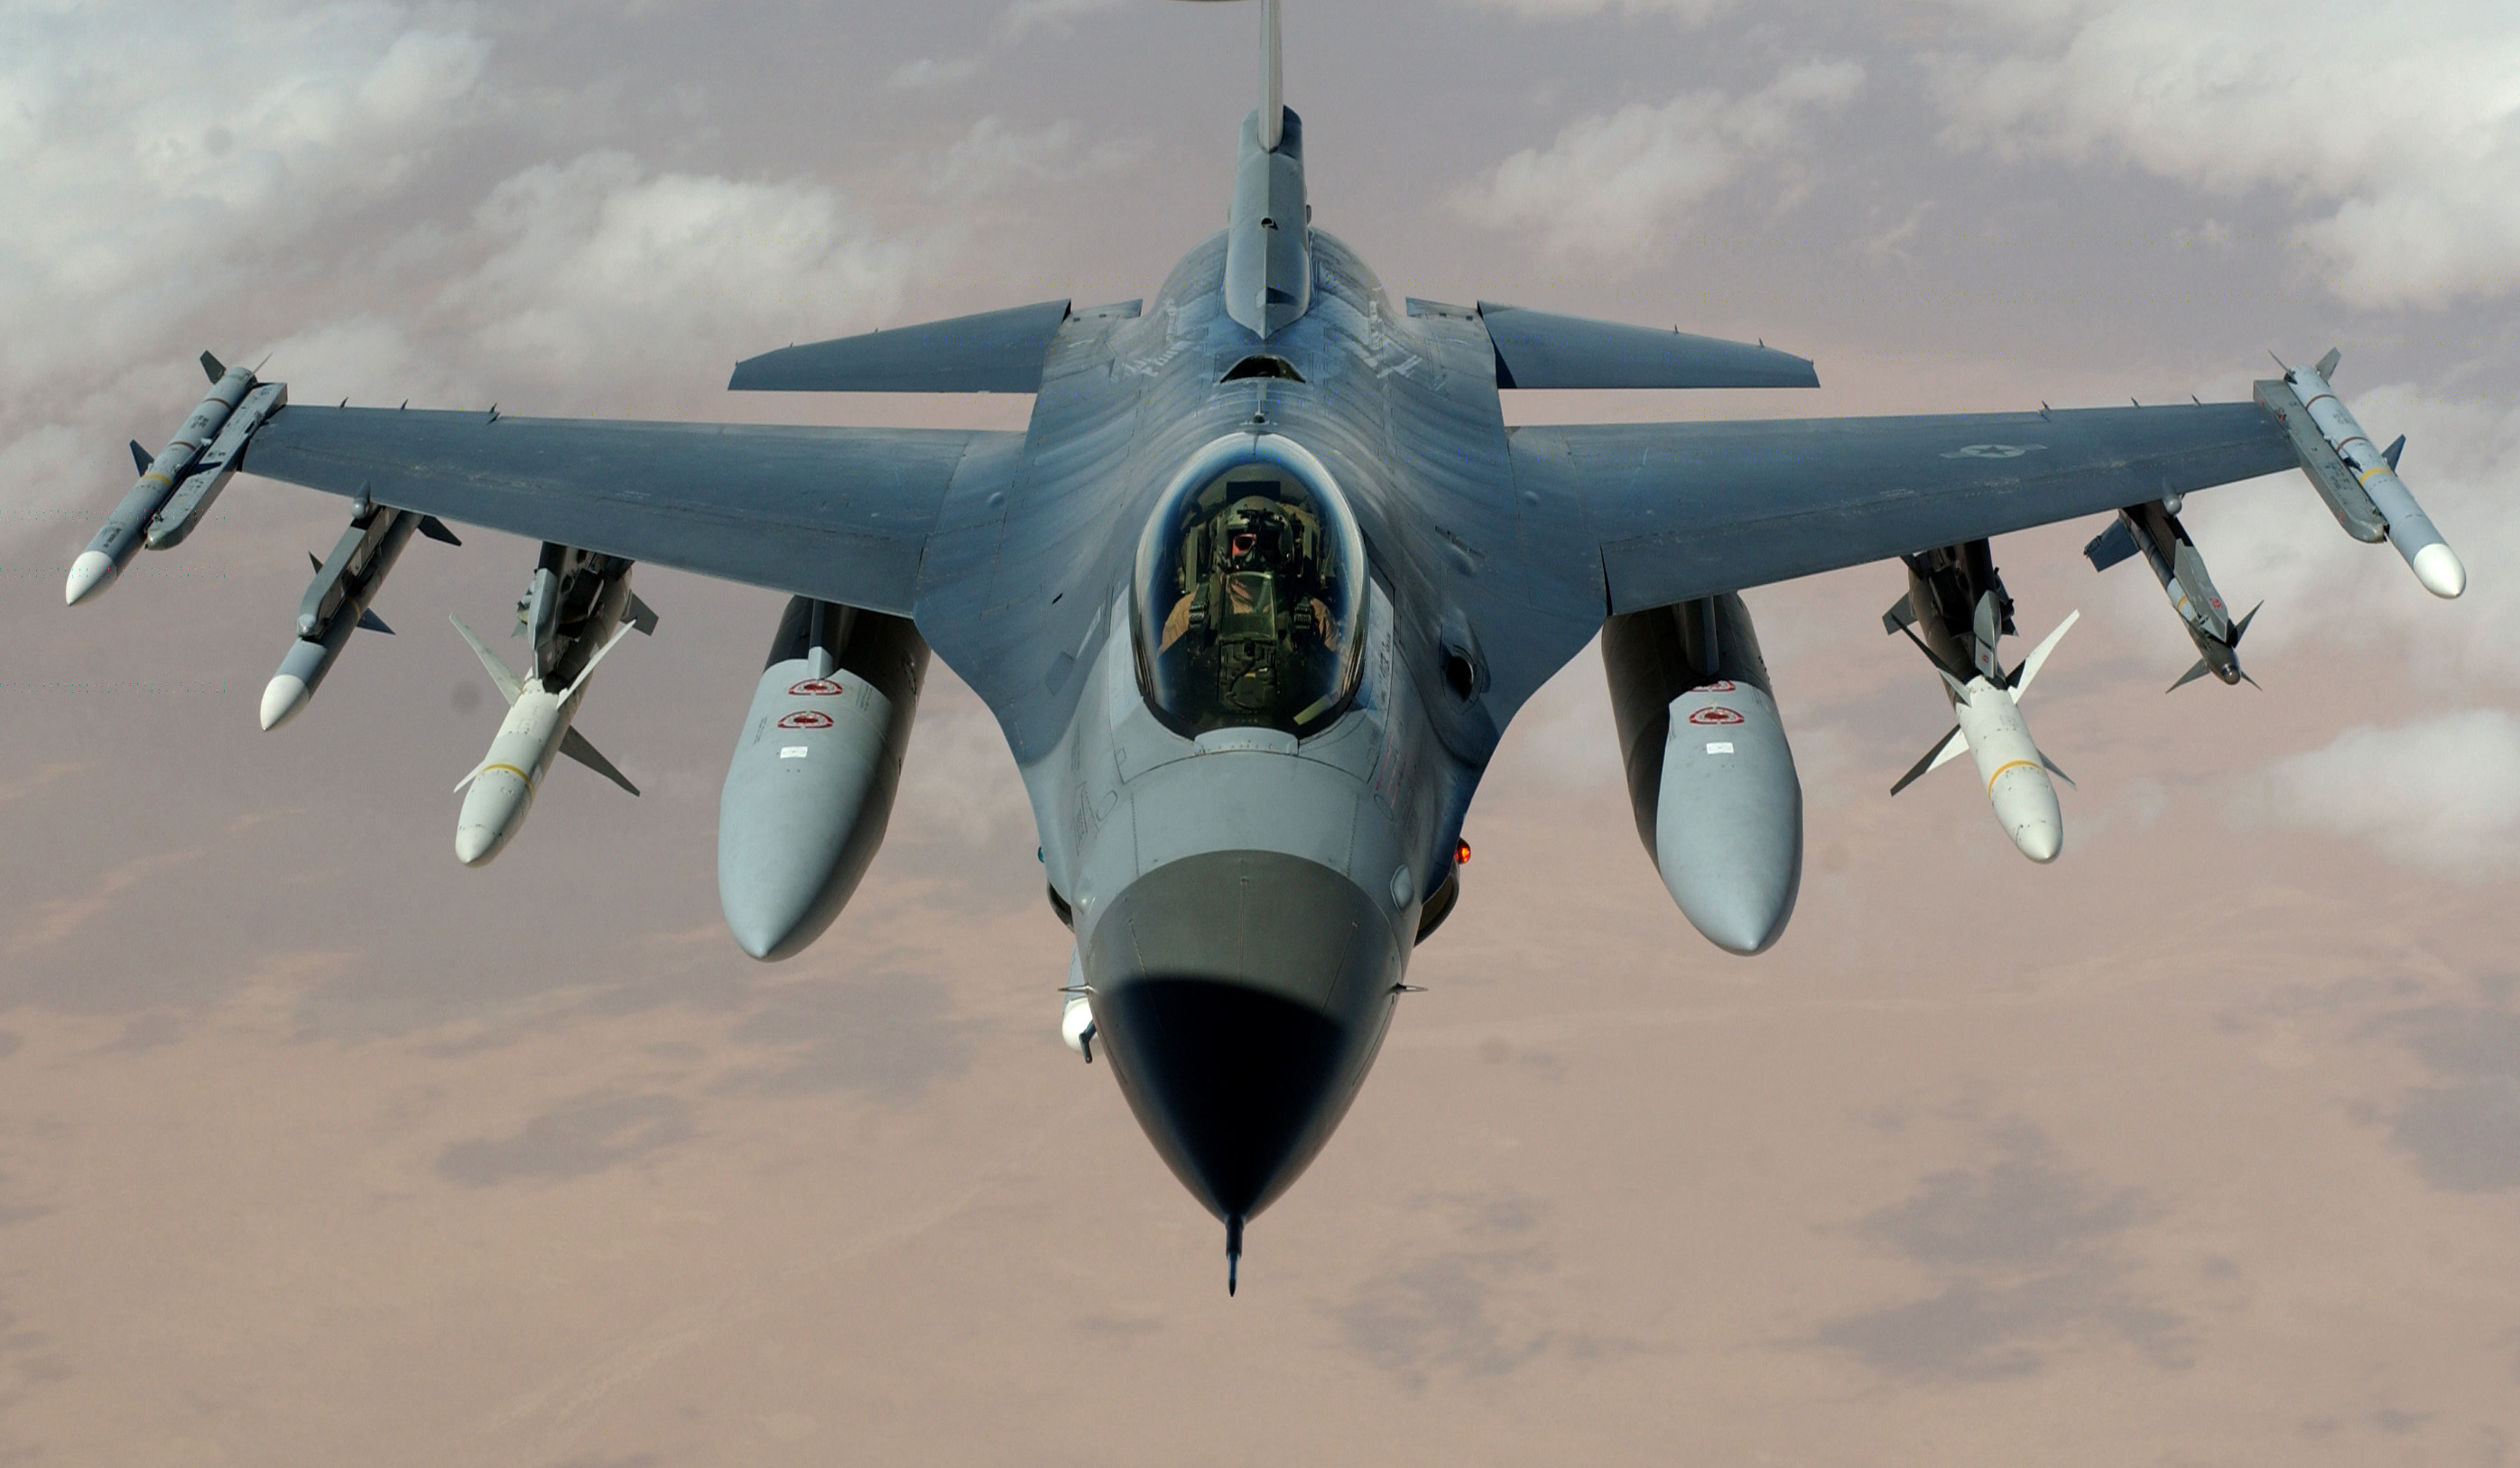 """OPERATION IRAQI FREEDOM -- An F-16 Fighting Falcon flies a mission in the skies near Iraq on March 22. The F-16s are from the 35th Fighter Wing """"Wild Weasels"""", Misawa Air Base, Japan."""